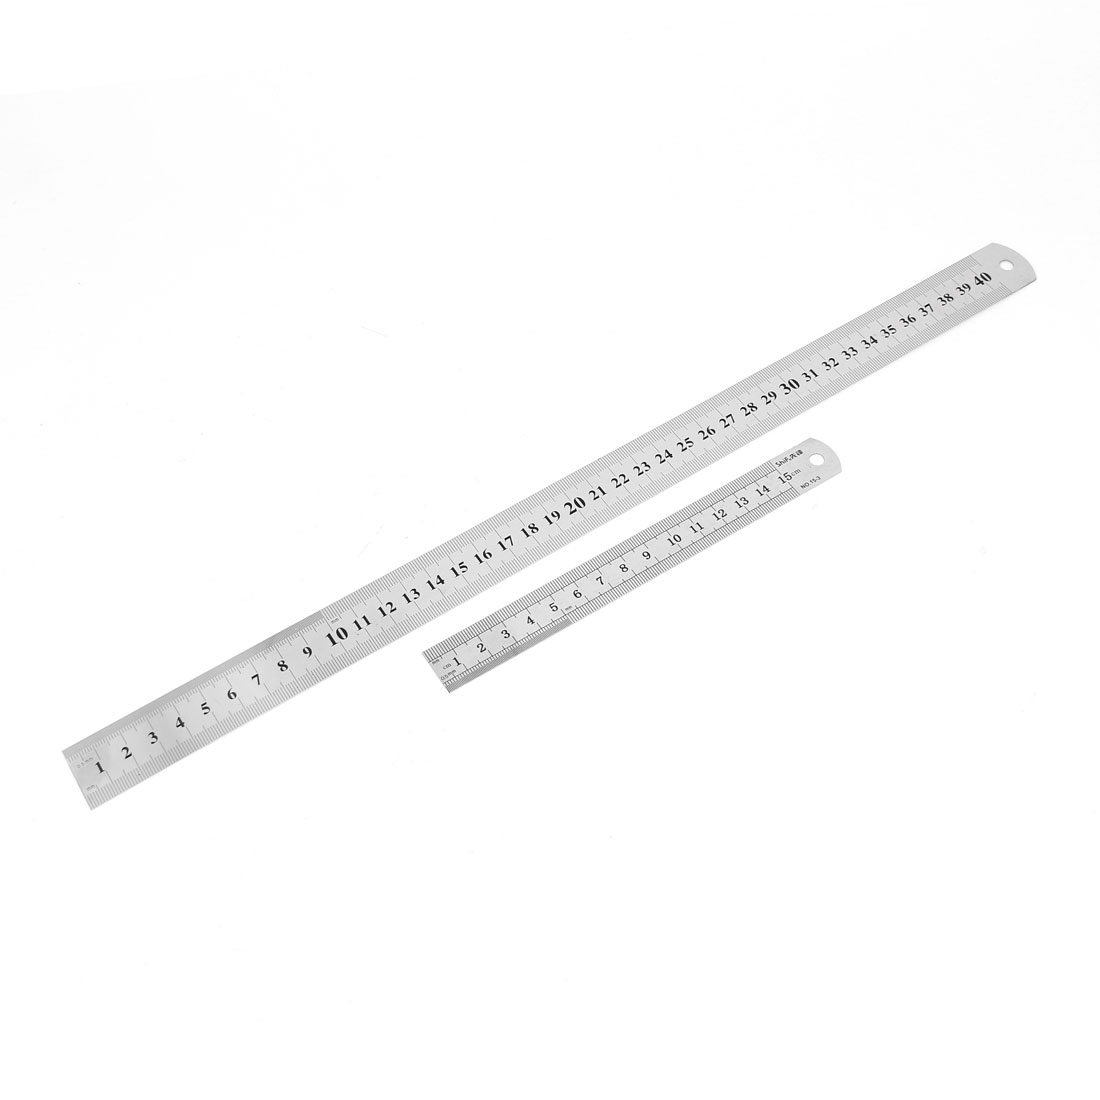 2 in 1 15cm 40cm Double Sides Students Metric Straight Ruler Silver Tone